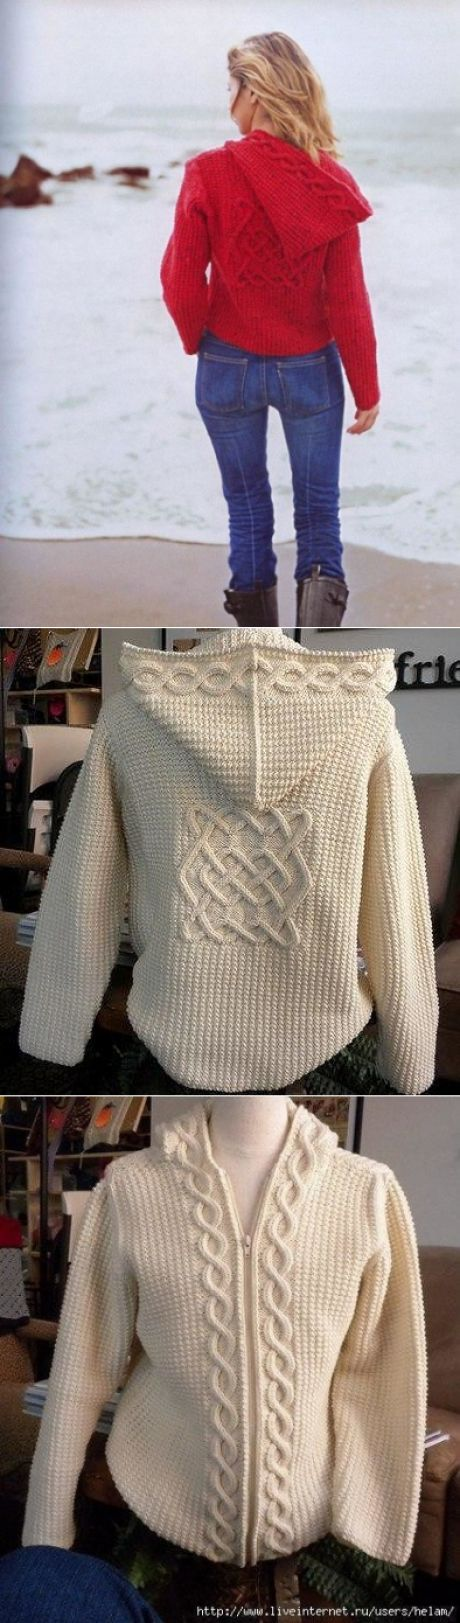 Celtic crochet hooded jacket.